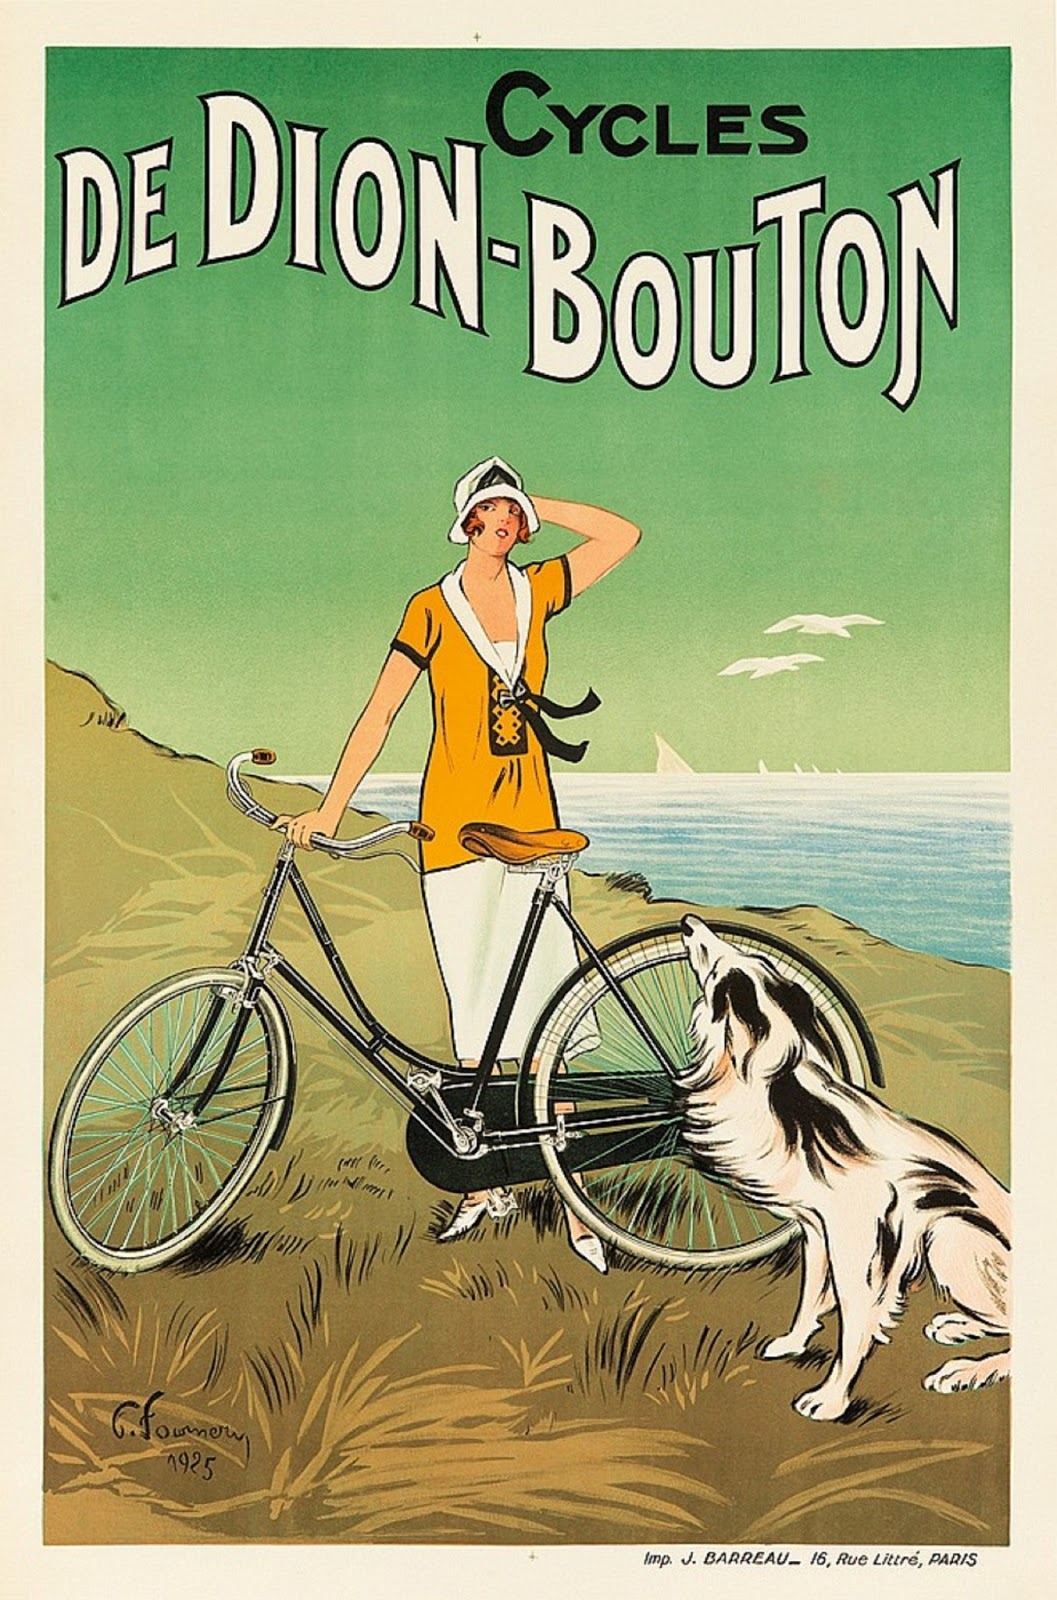 Cycles Dion Bouton